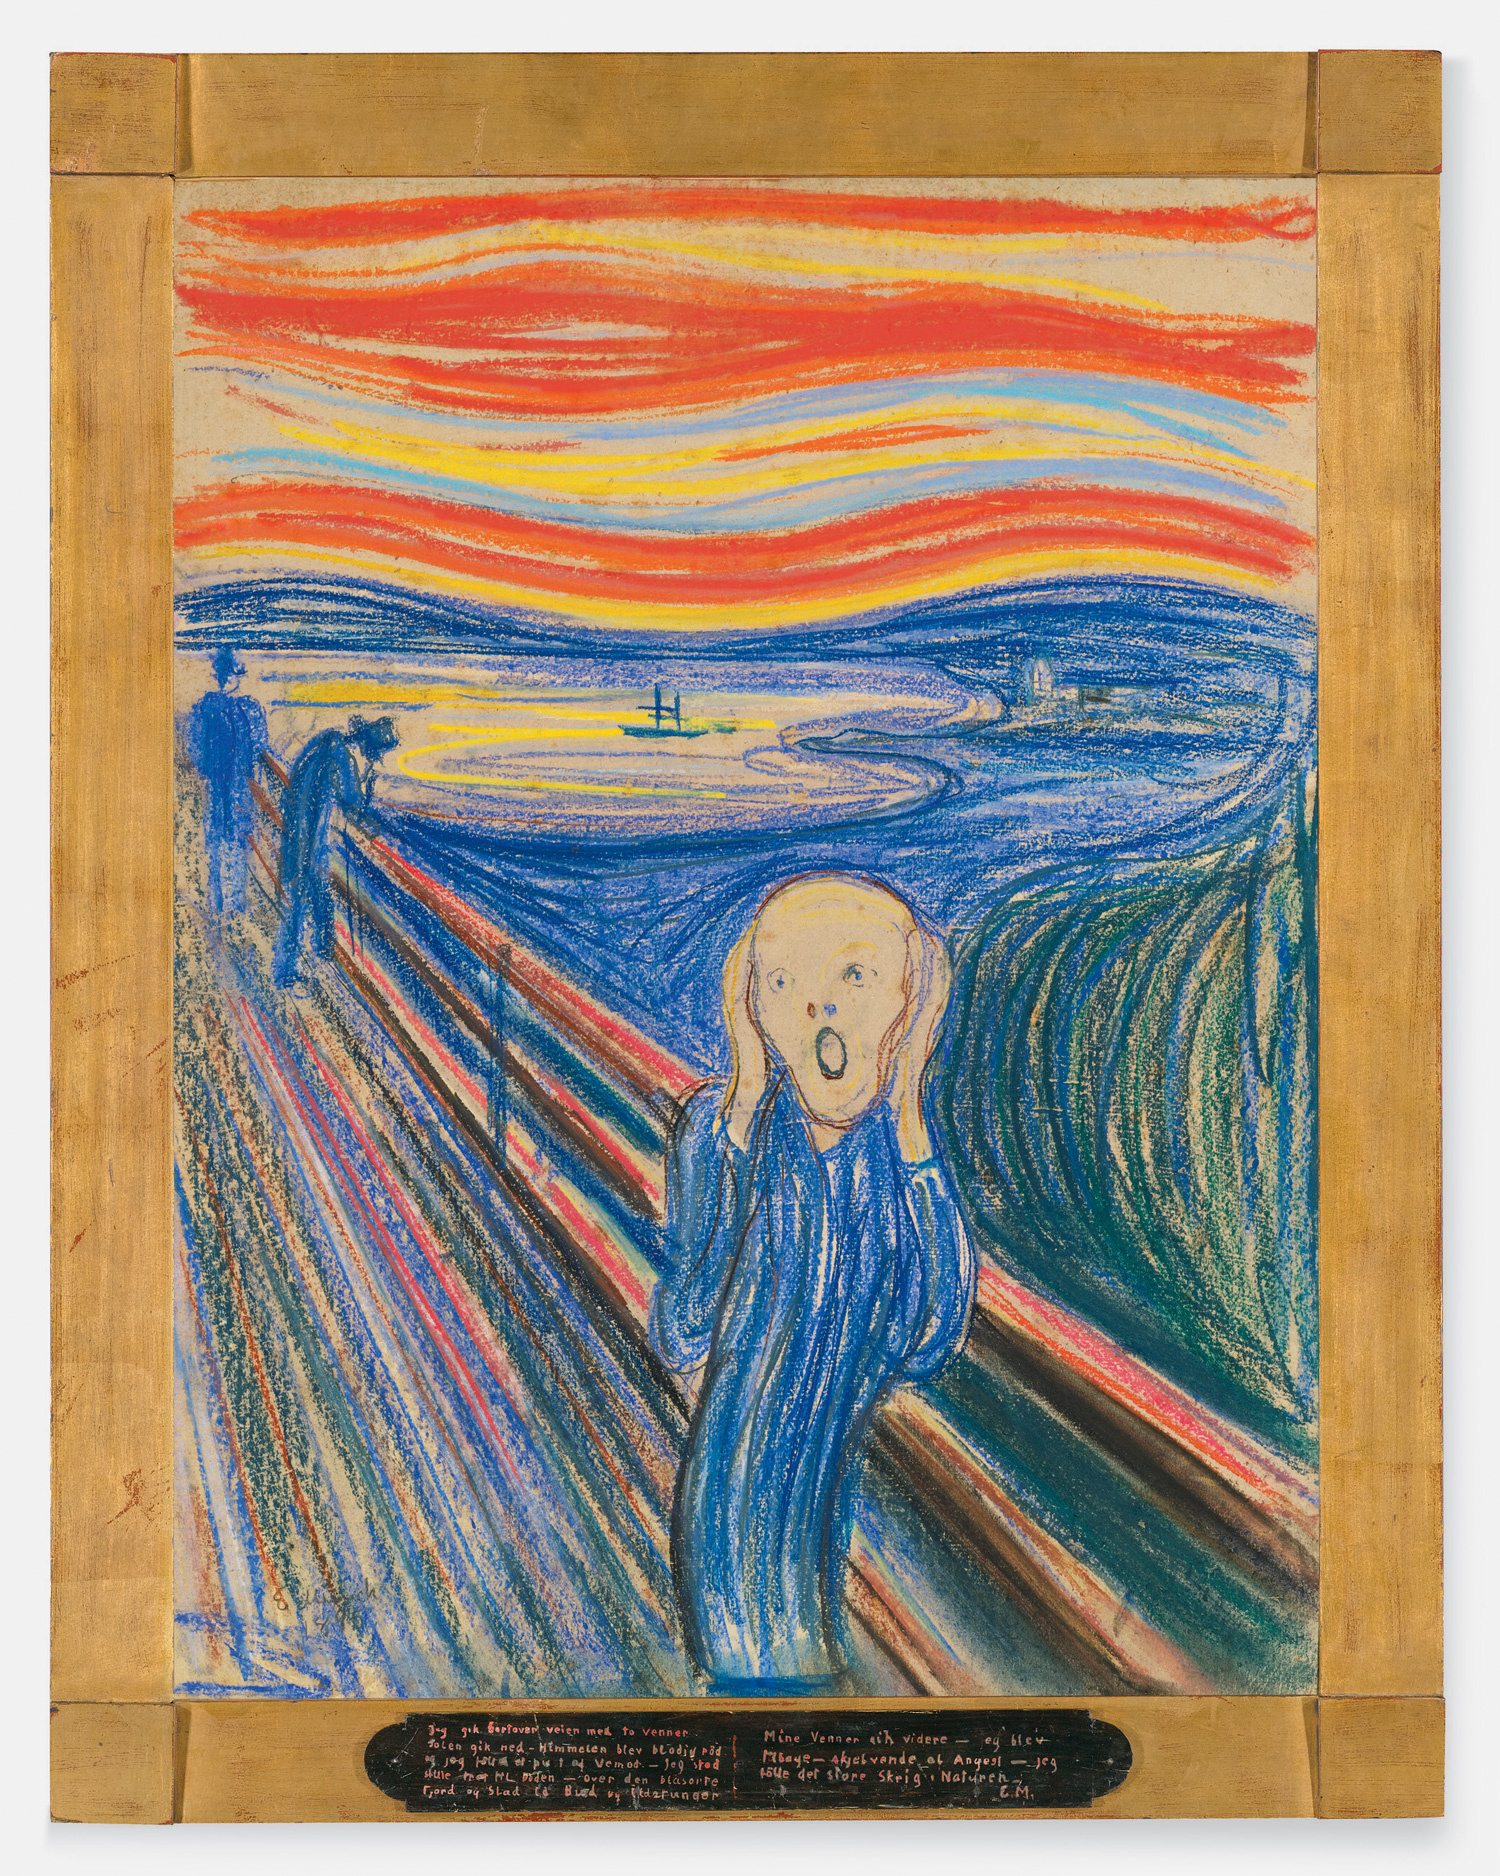 Edvard Munch. The Scream. Pastel on board. 1895. © 2012 The Munch Museum/The Munch-Ellingsen Group/Artists Rights Society (ARS), New York